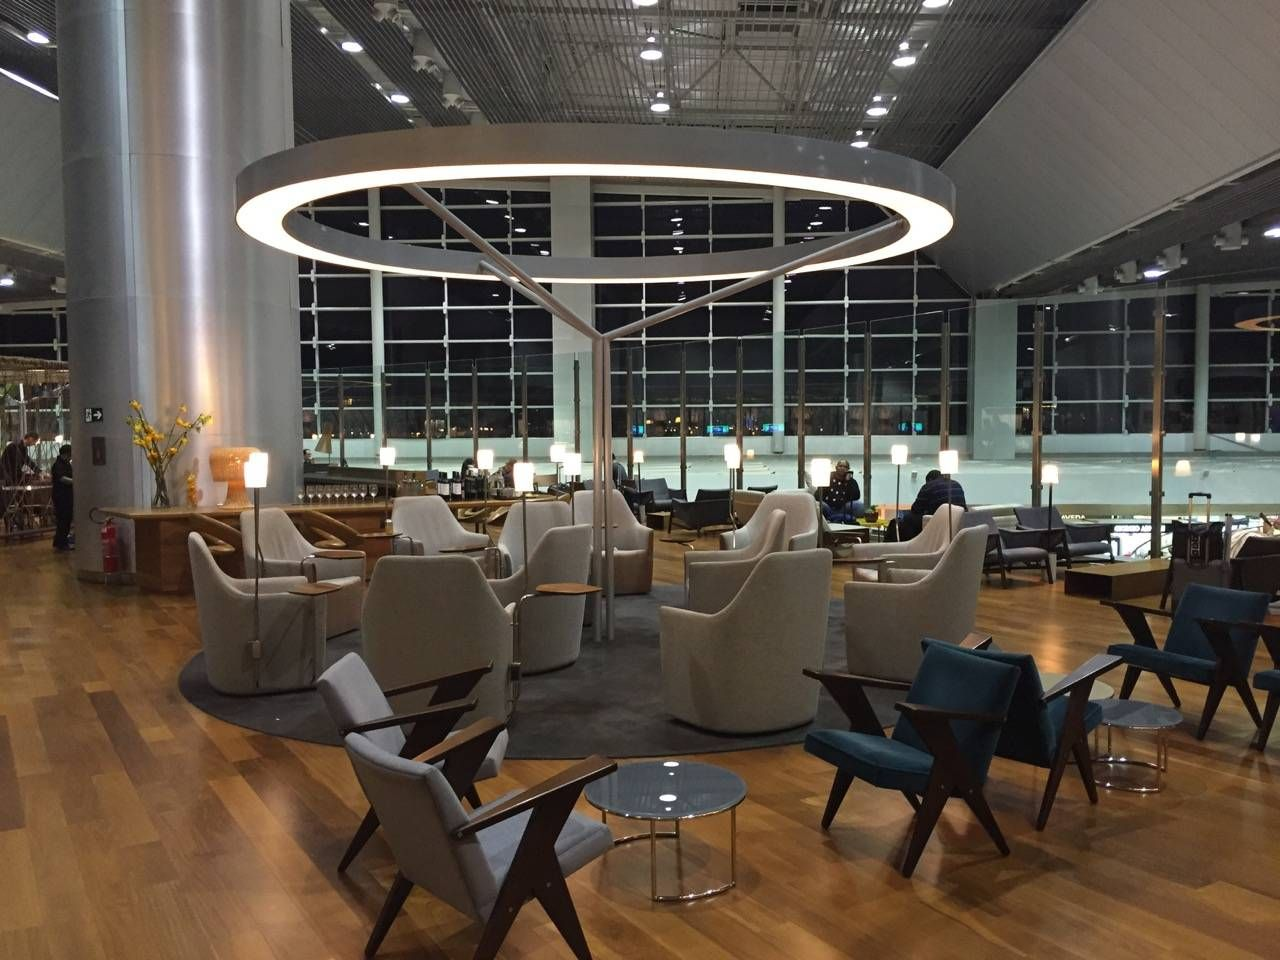 Star Alliance Lounge GRU-022